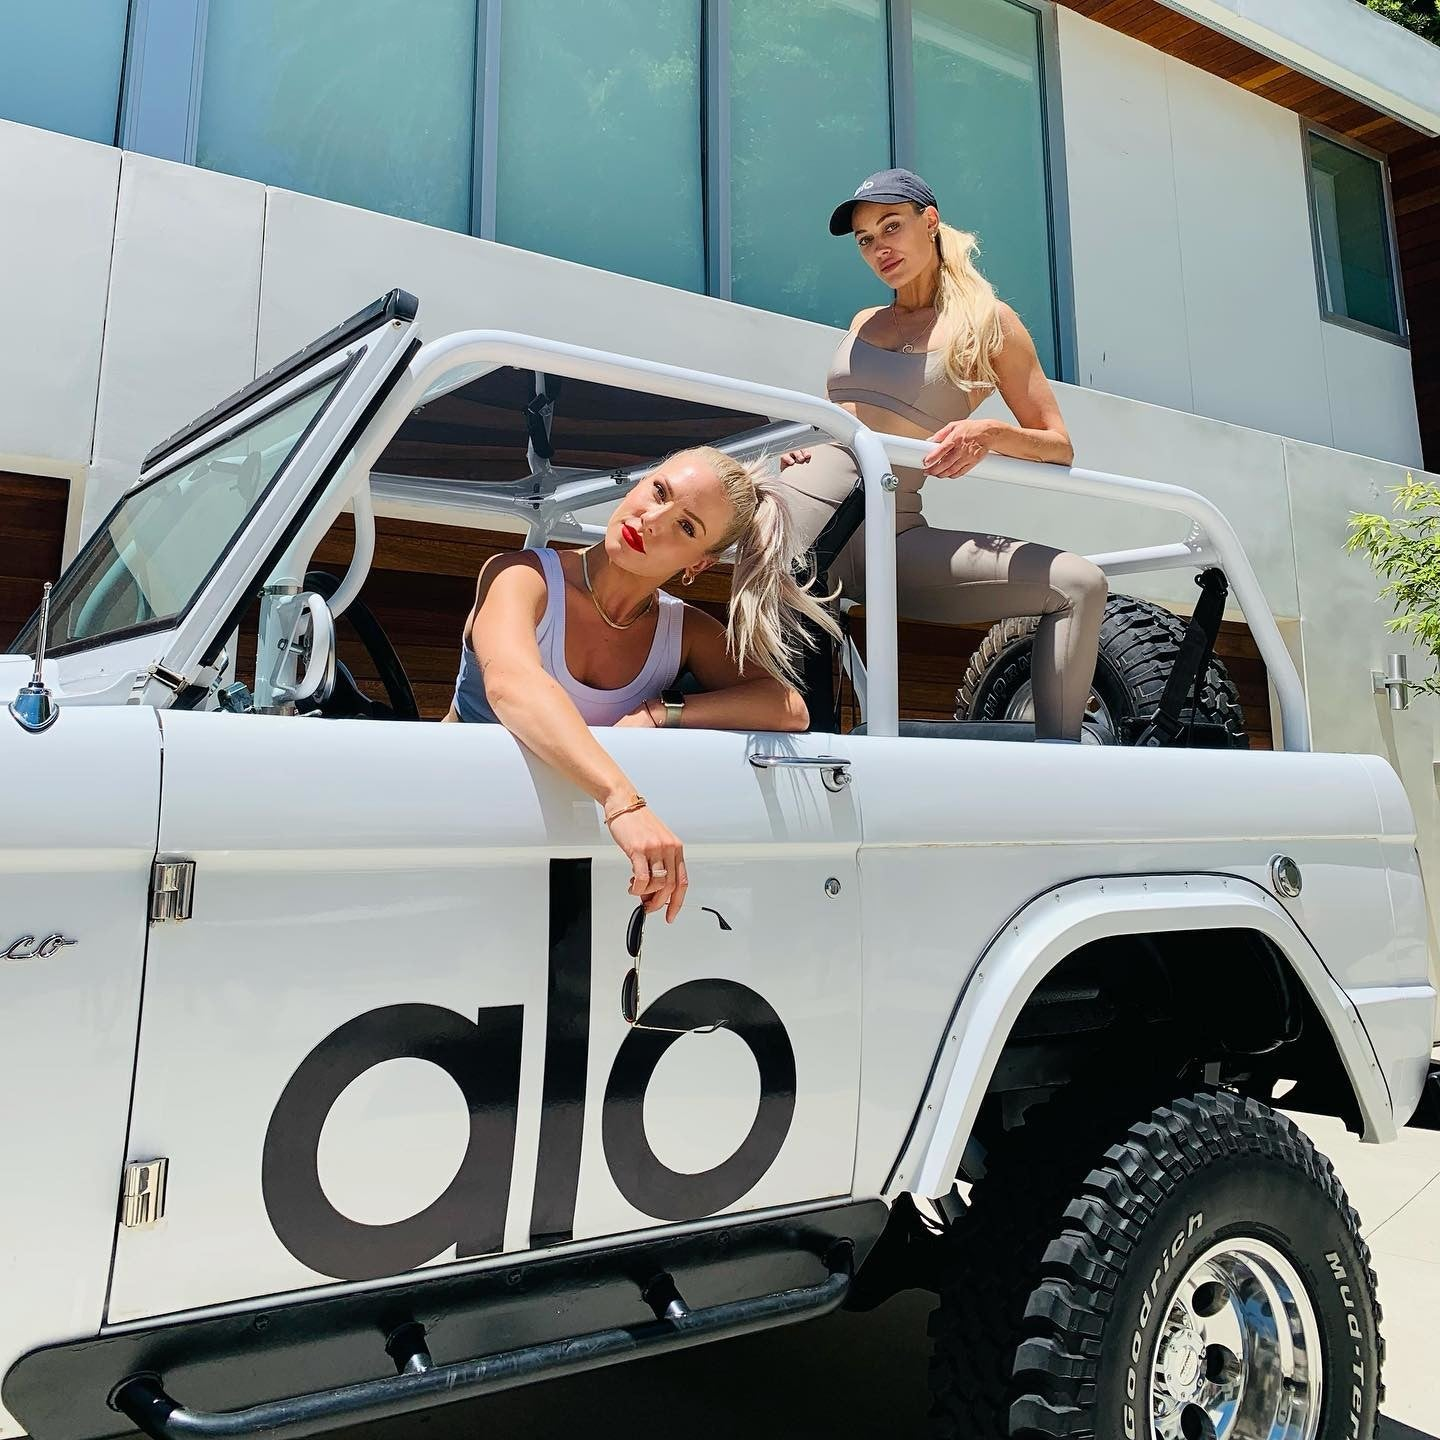 @sharnaburgess and @petamurgatroyd posing in front of the Alo Bronco at Alo House.